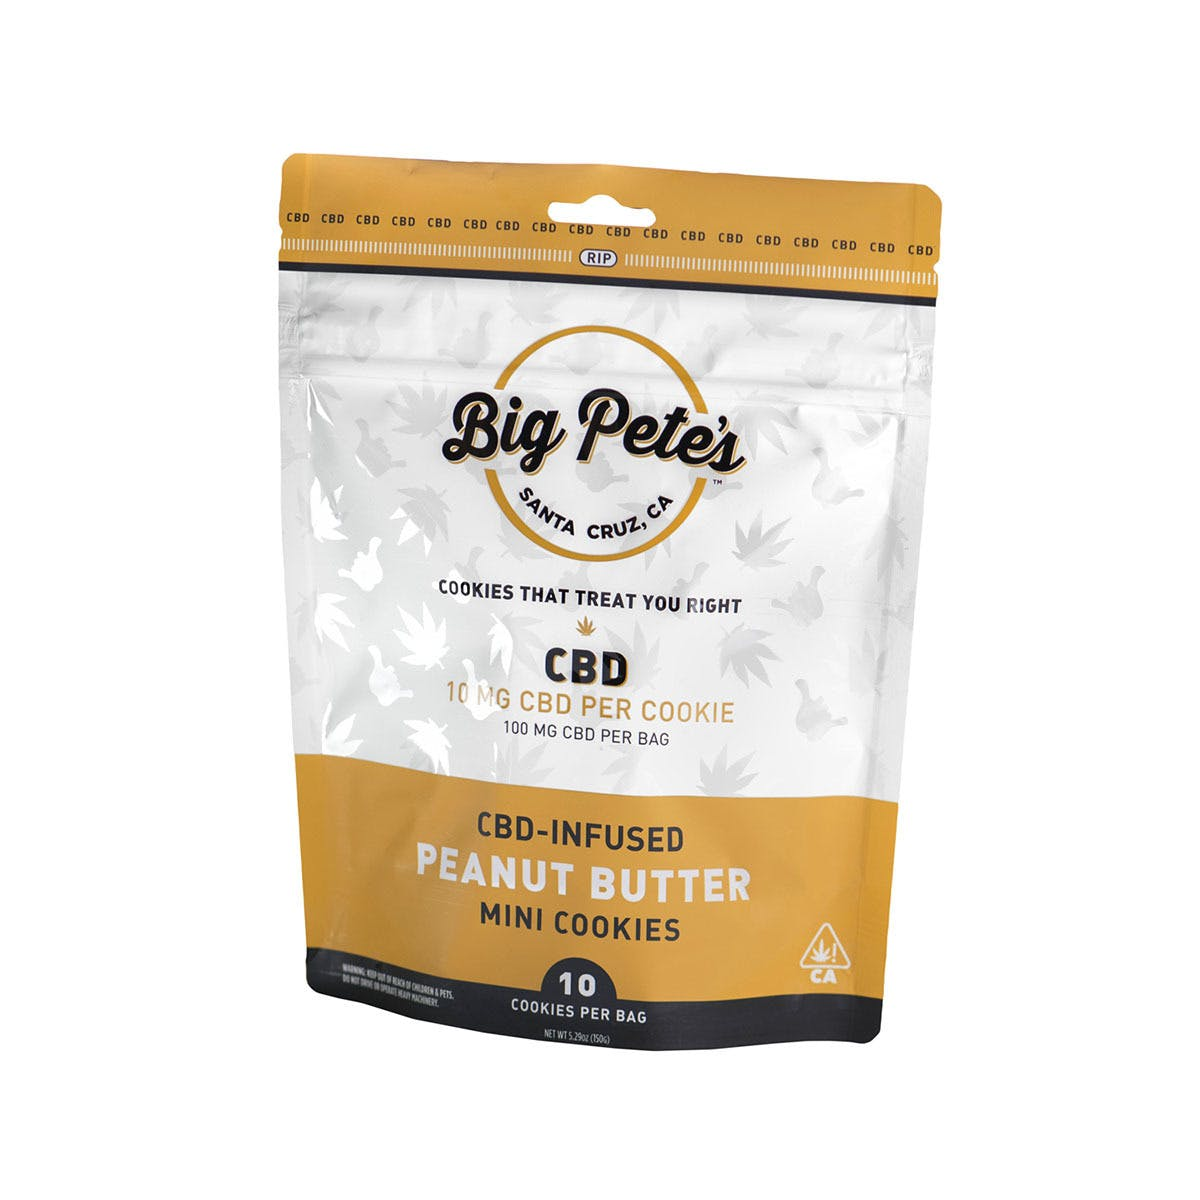 marijuana-dispensaries-mspc-in-mt-shasta-10-pack-peanut-butter-cbd-100mg